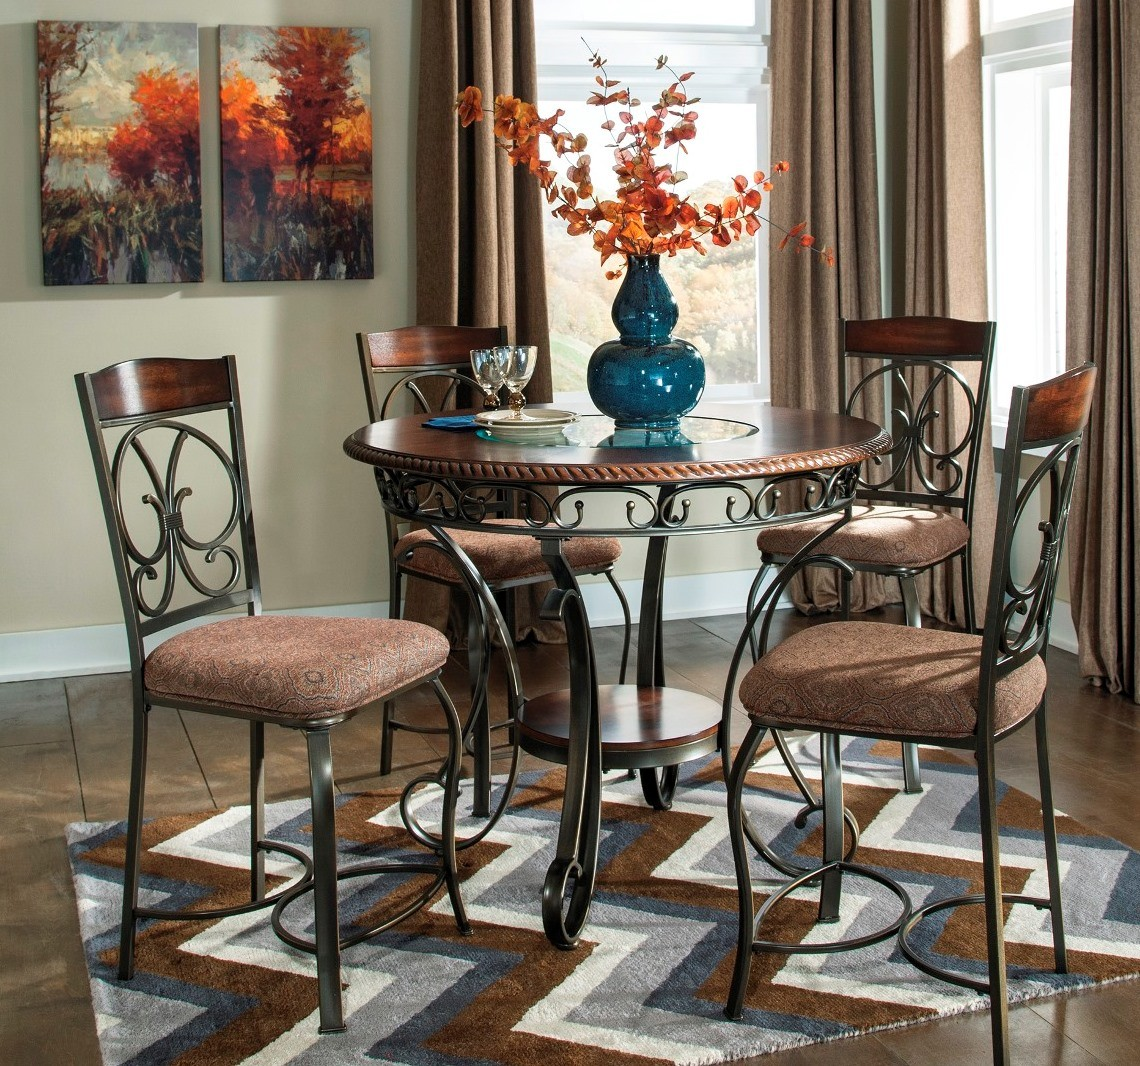 dining room counter height tables | Glambrey Round Dining Room Counter Height Table Set from ...